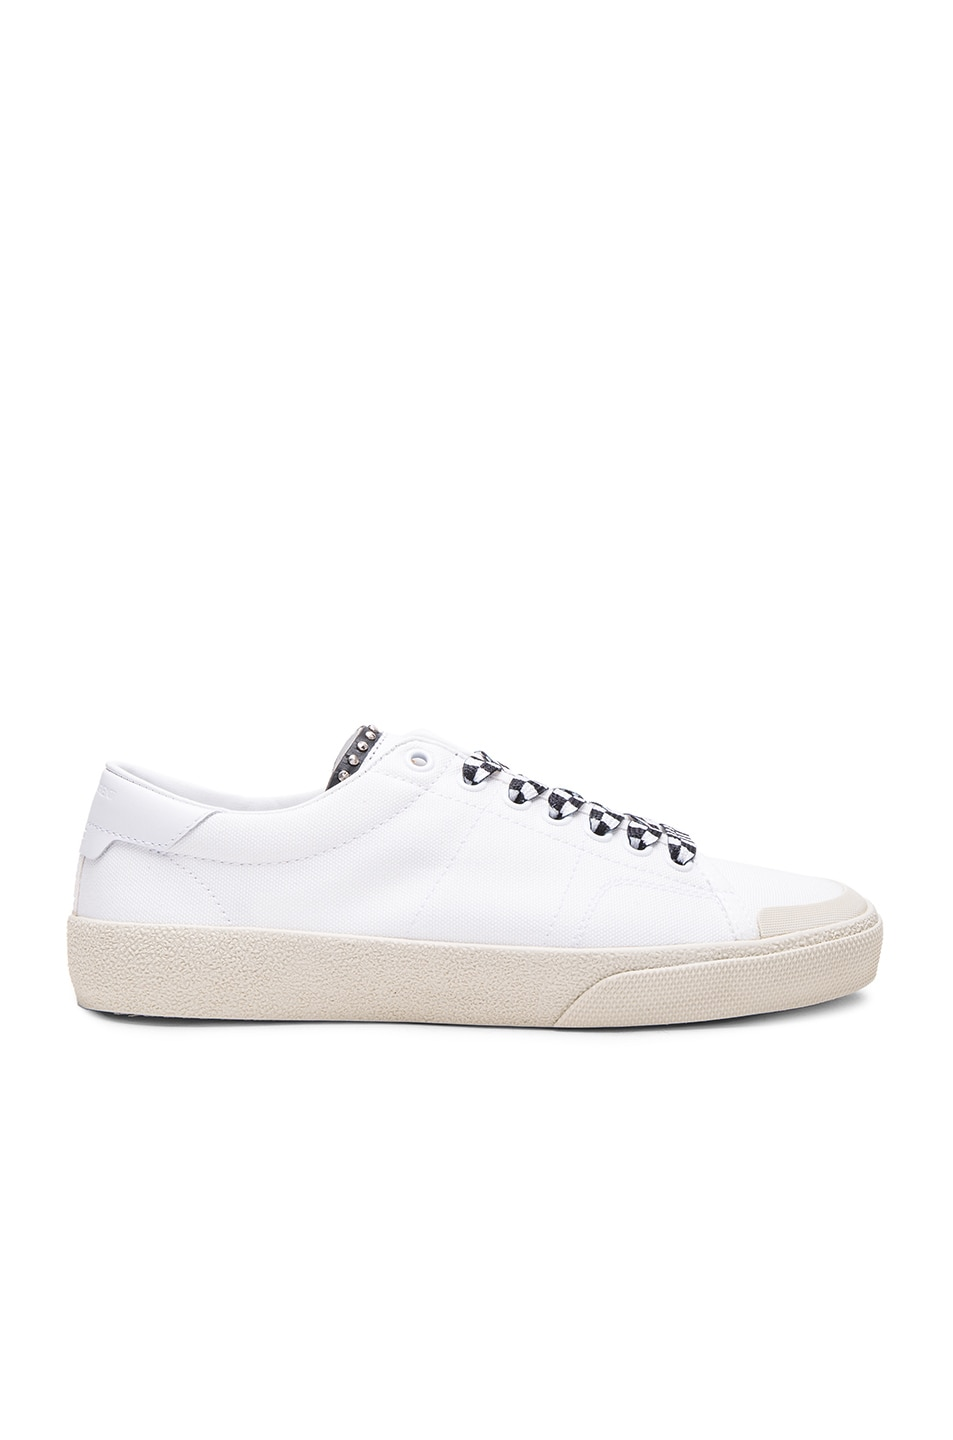 3c25c50280af Image 1 of Saint Laurent Checkered Lace Leather Surf Sneakers in Off White